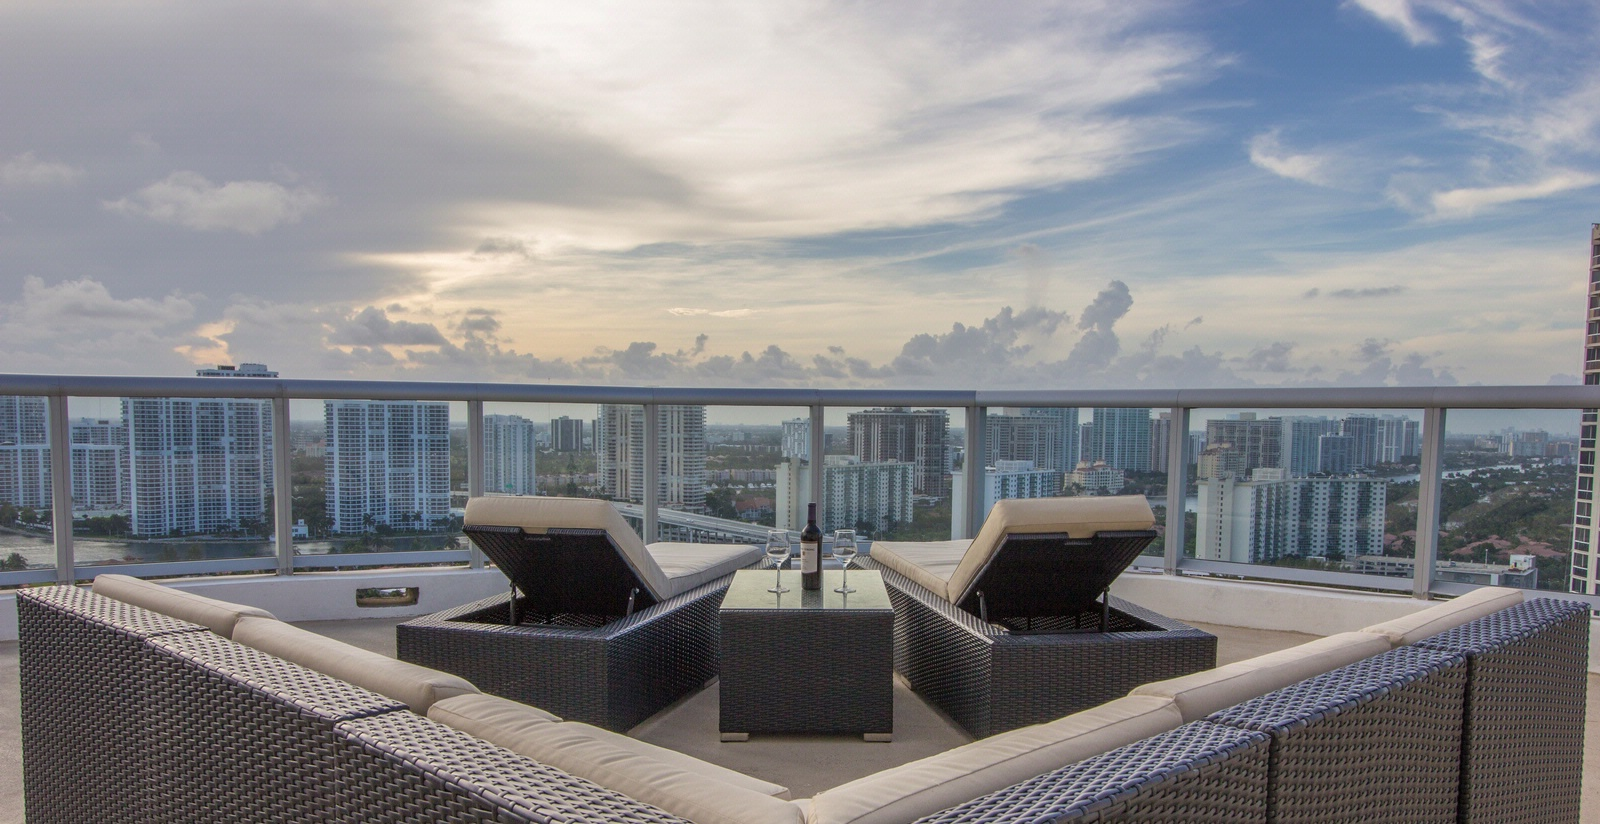 M Resort Residences 18683 Collins Avenue Sunny Isles Beach, FL 33160 for sales and rentals call Eddie La Rosa 305-968-8397